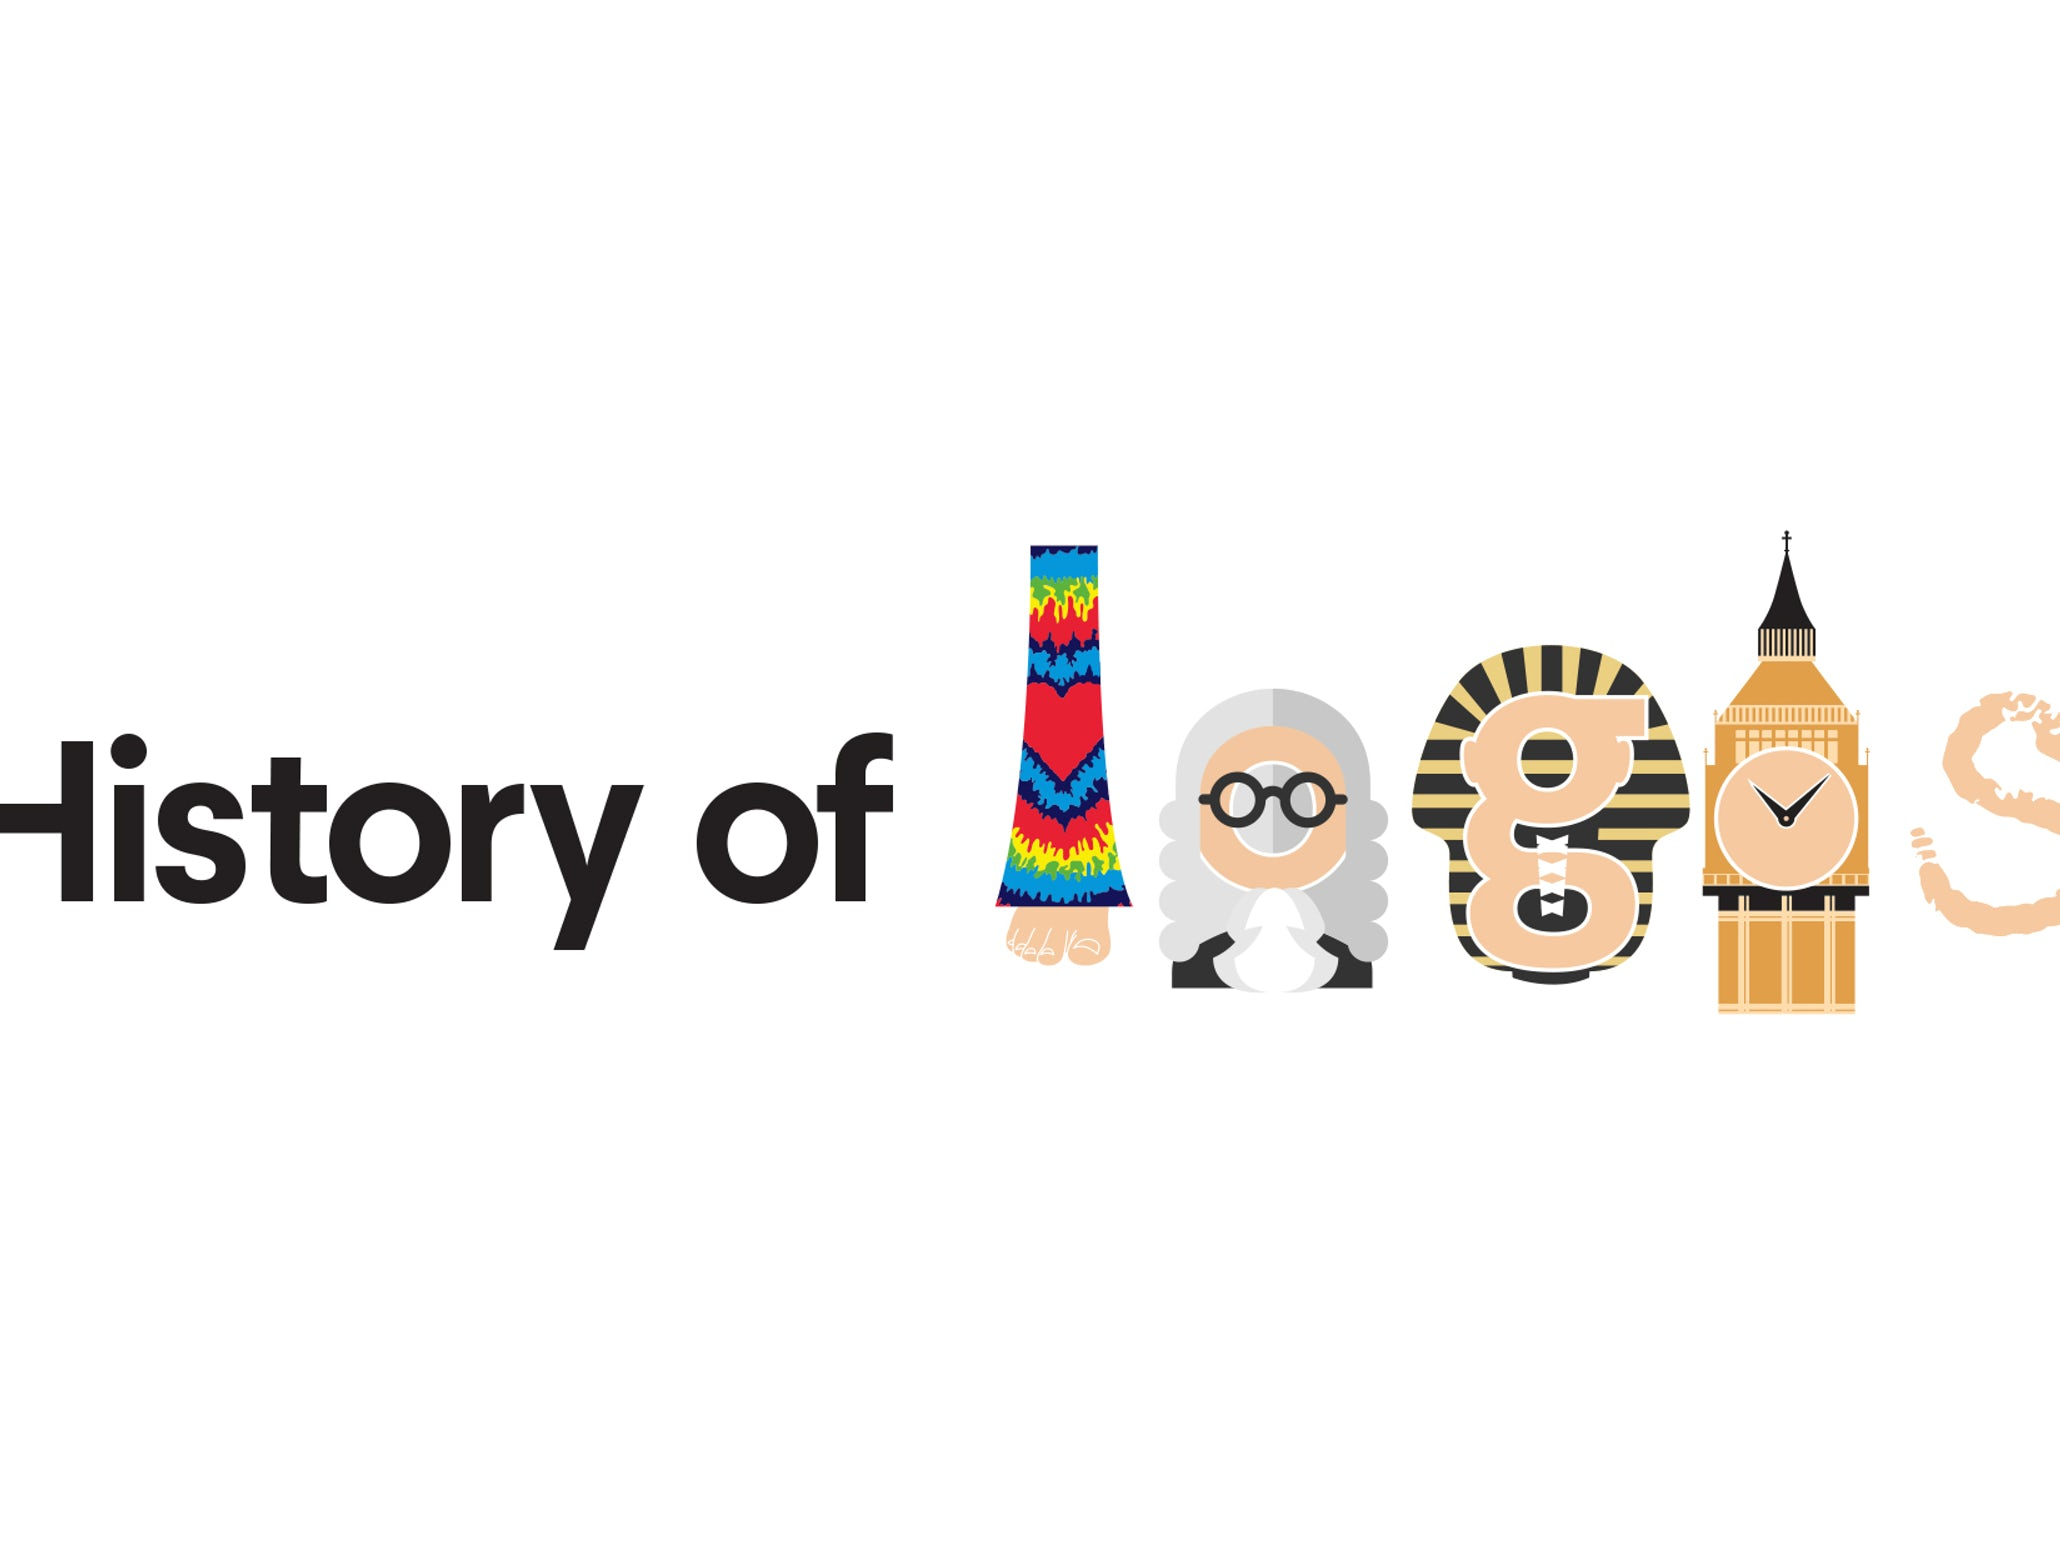 The history of logos.